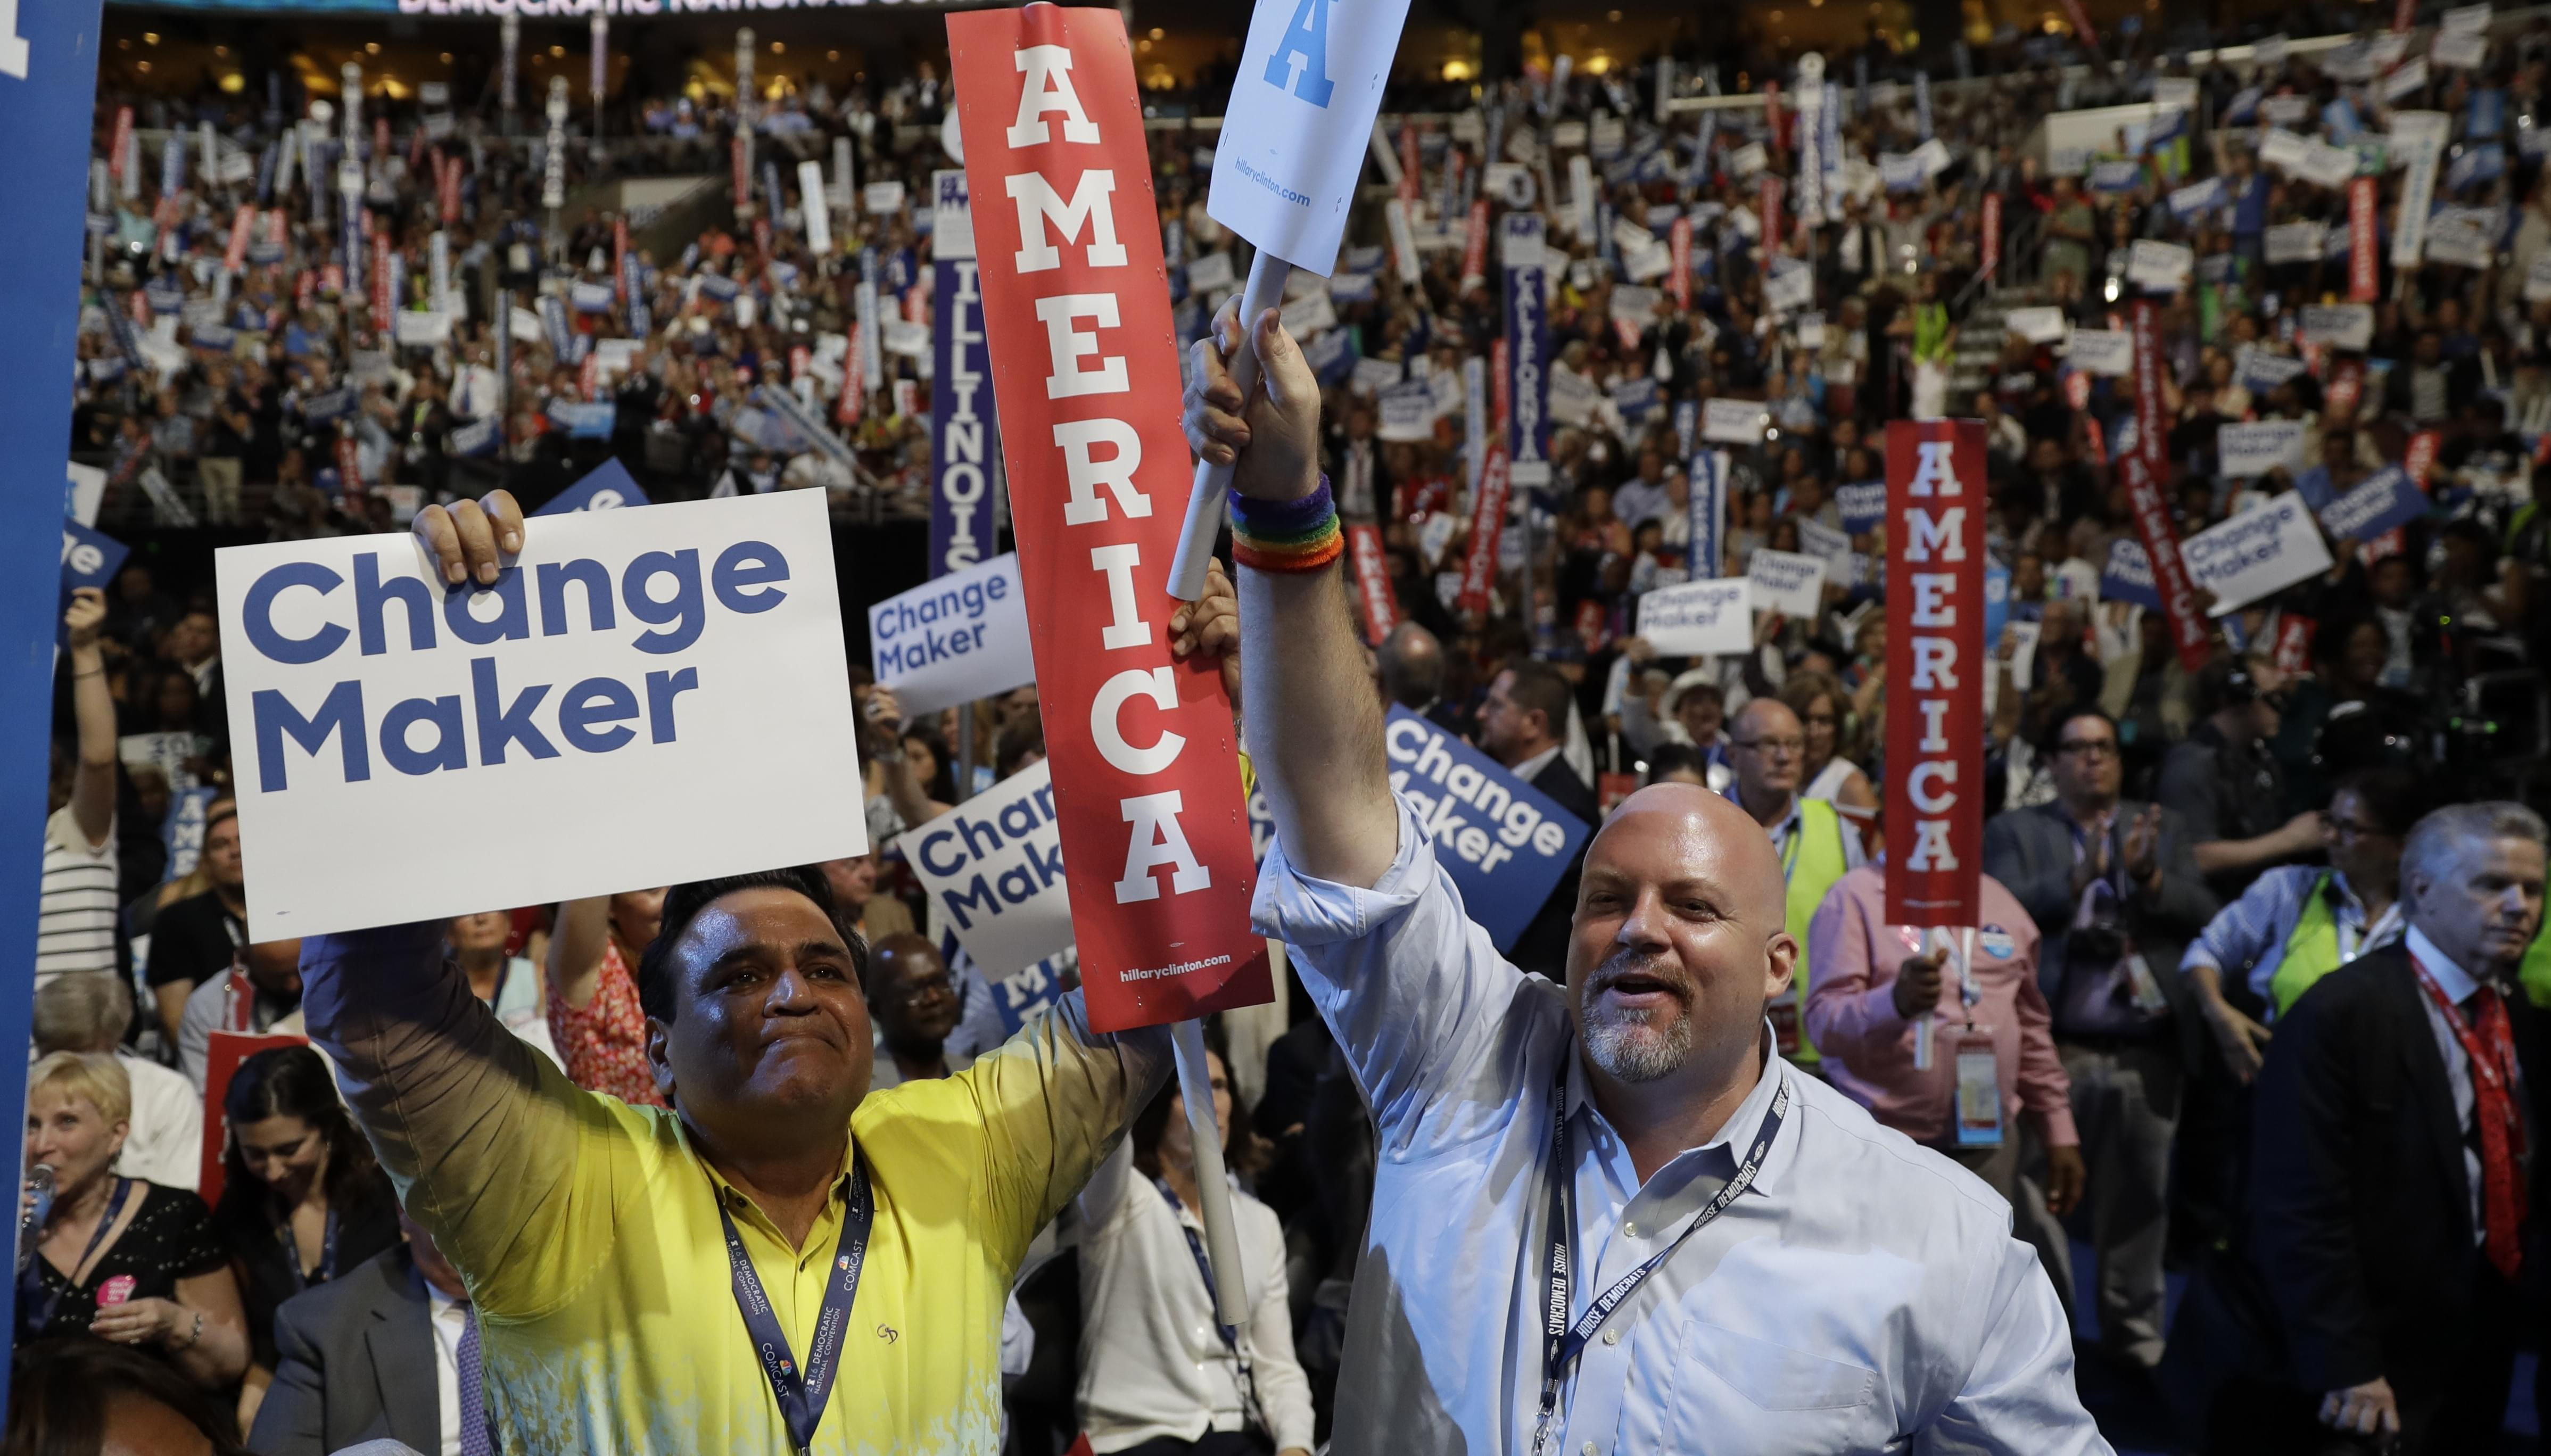 Illinois delegate Sunil Puri and supporter Jon Pyatt cheer during the second day session of the Democratic National Convention in Philadelphia.